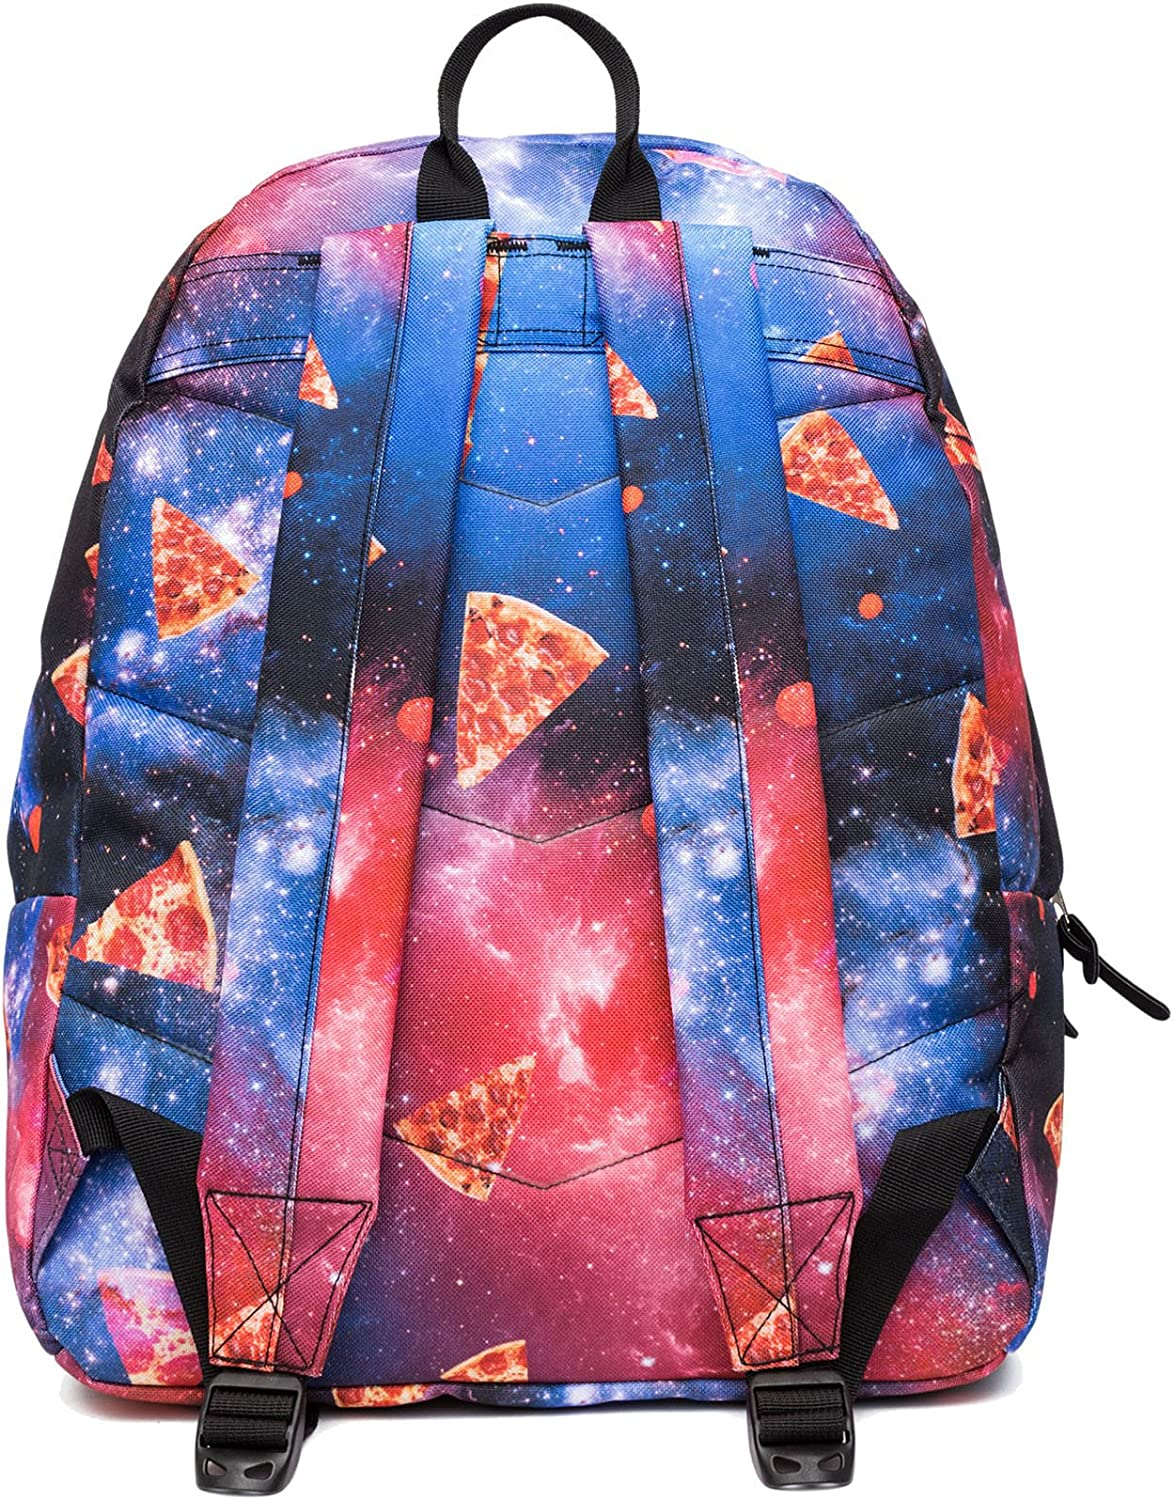 Hype Backpack Bags Rucksacks School Bag Many New Colours /& Designs Space Pizza